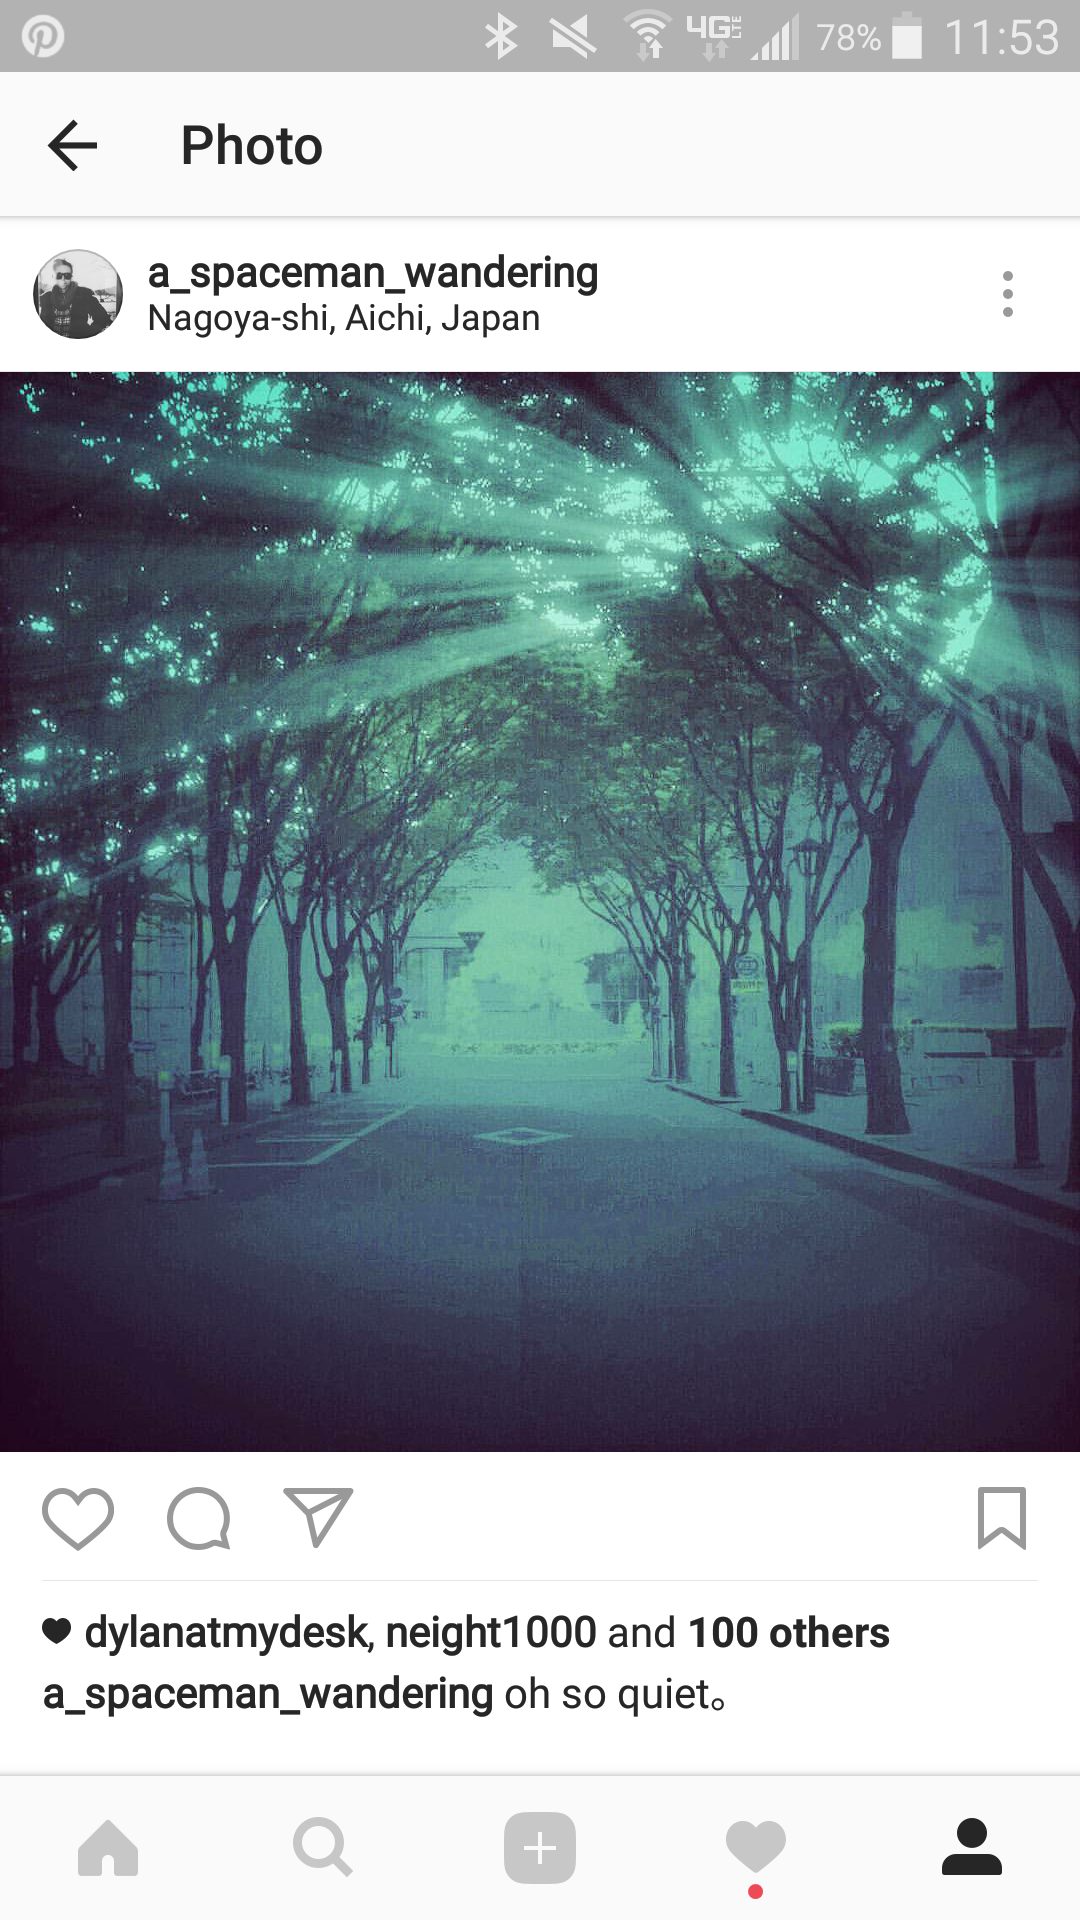 An Instagram post from the author's account, this image being an attempt to capture the surreal-ness of those flickering moments where memories are permanently cemented in the mind.